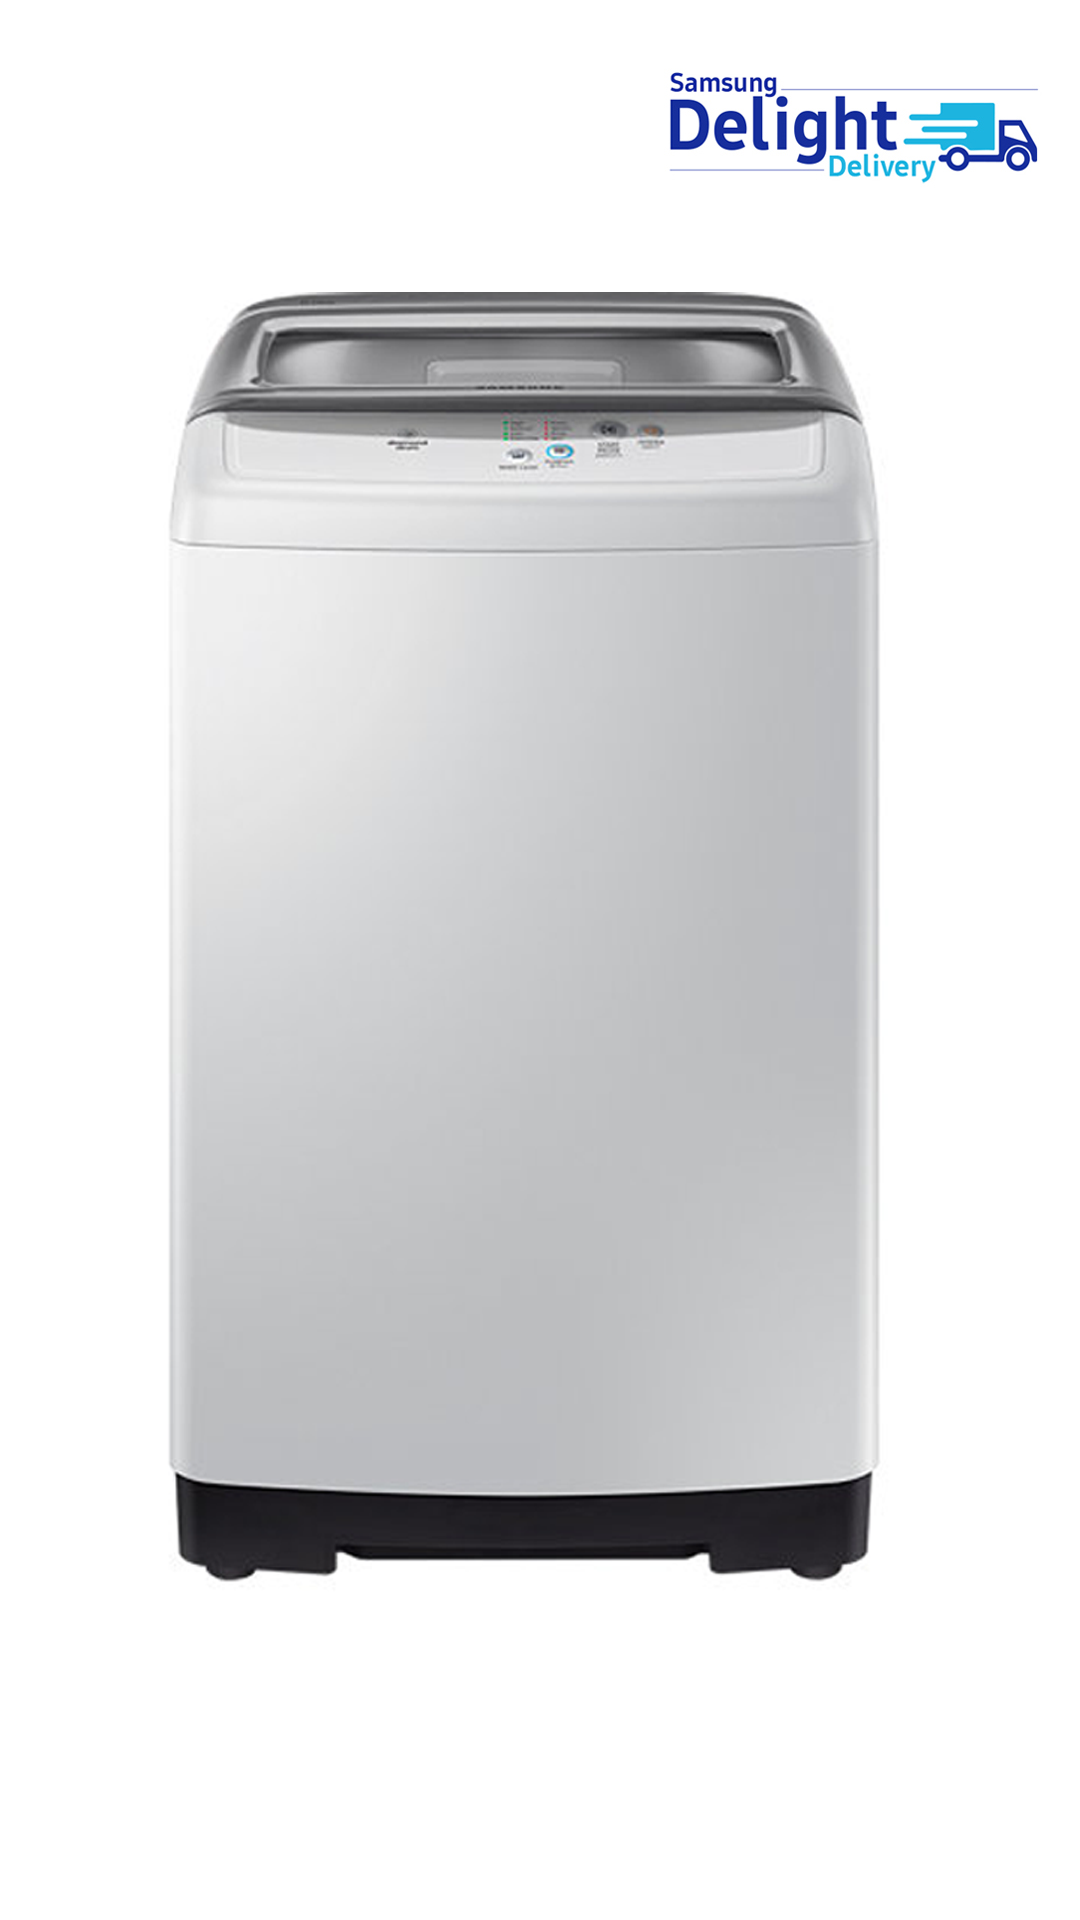 Samsung 6 kg Fully Automatic Top Loading Washing Machine (Light Grey) - WA60H4100HY